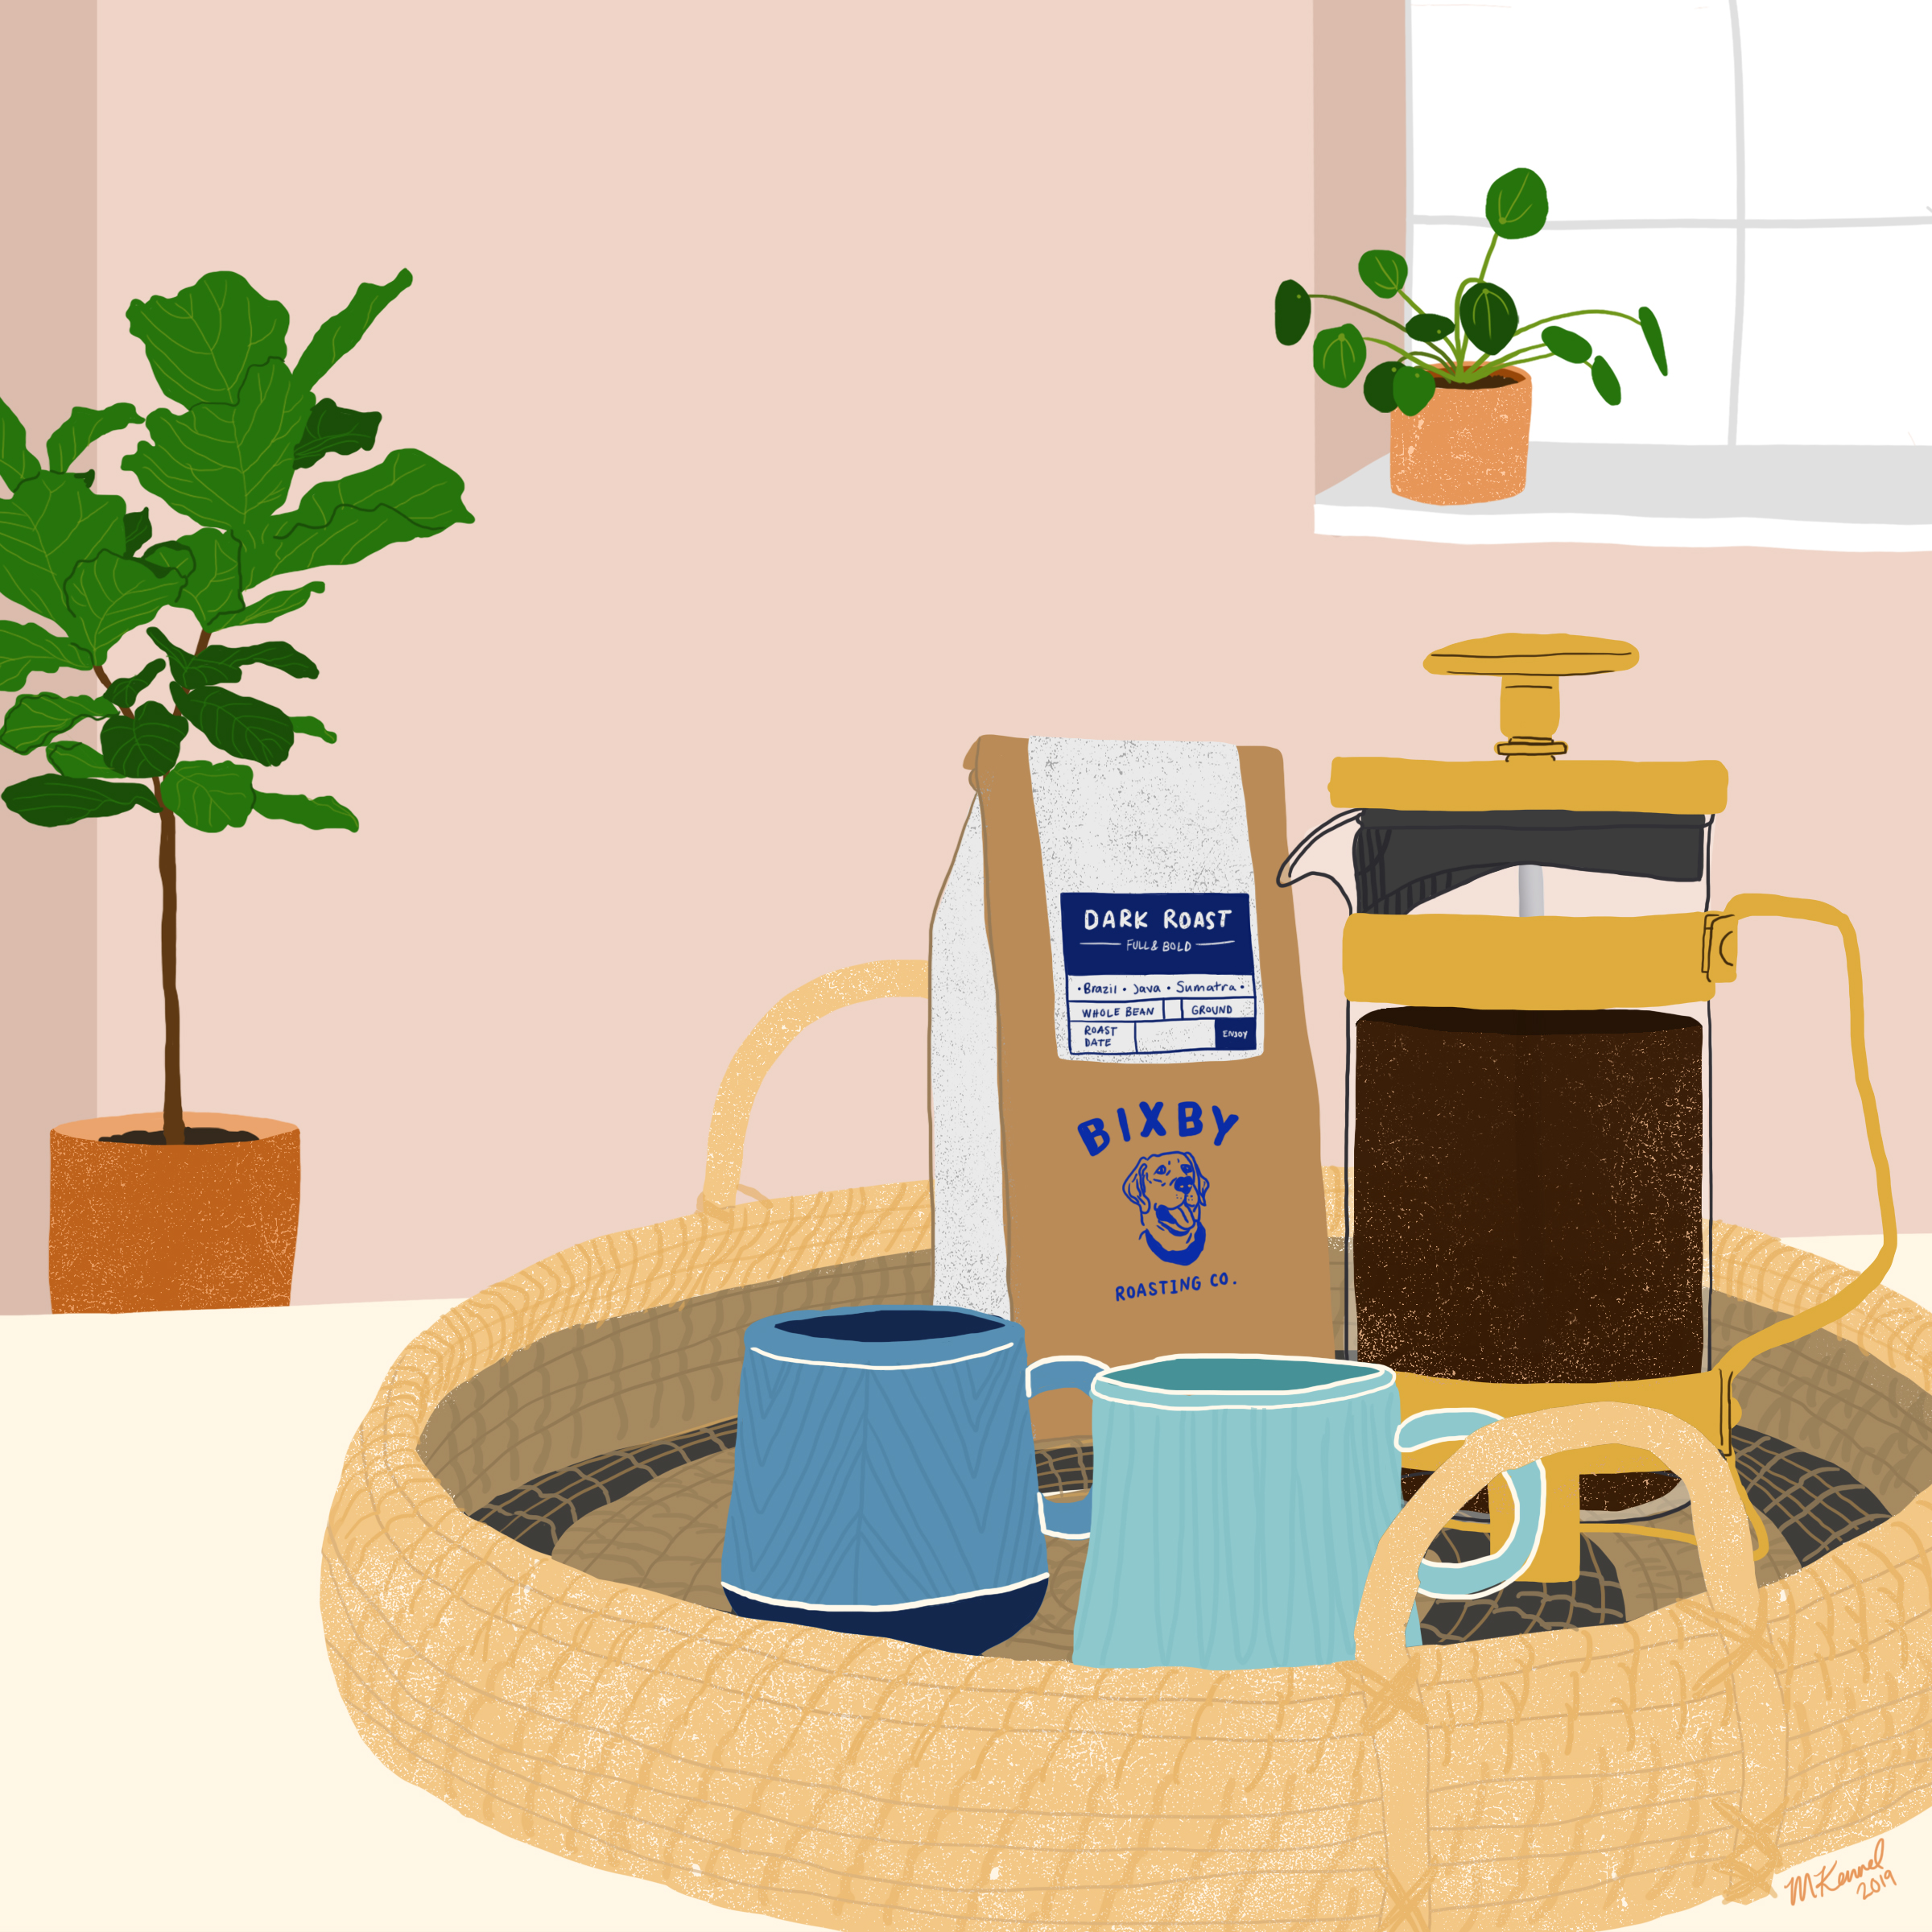 Digital illustration for Bixby Coffee. 2019.